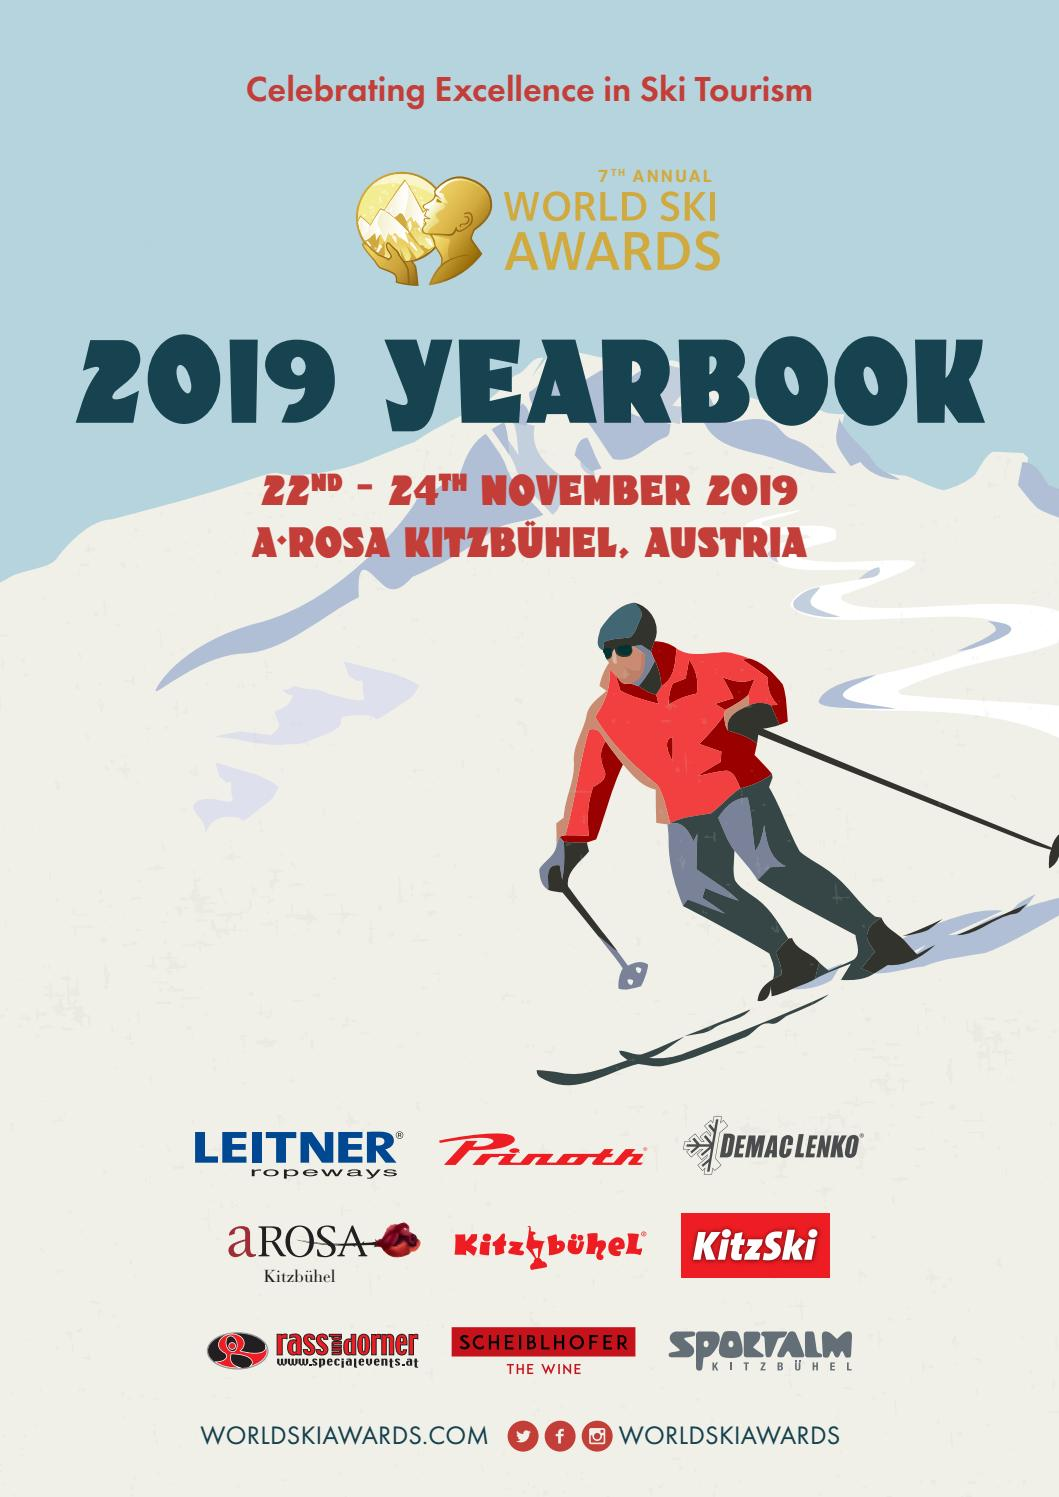 World Ski Awards 2019 Yearbook